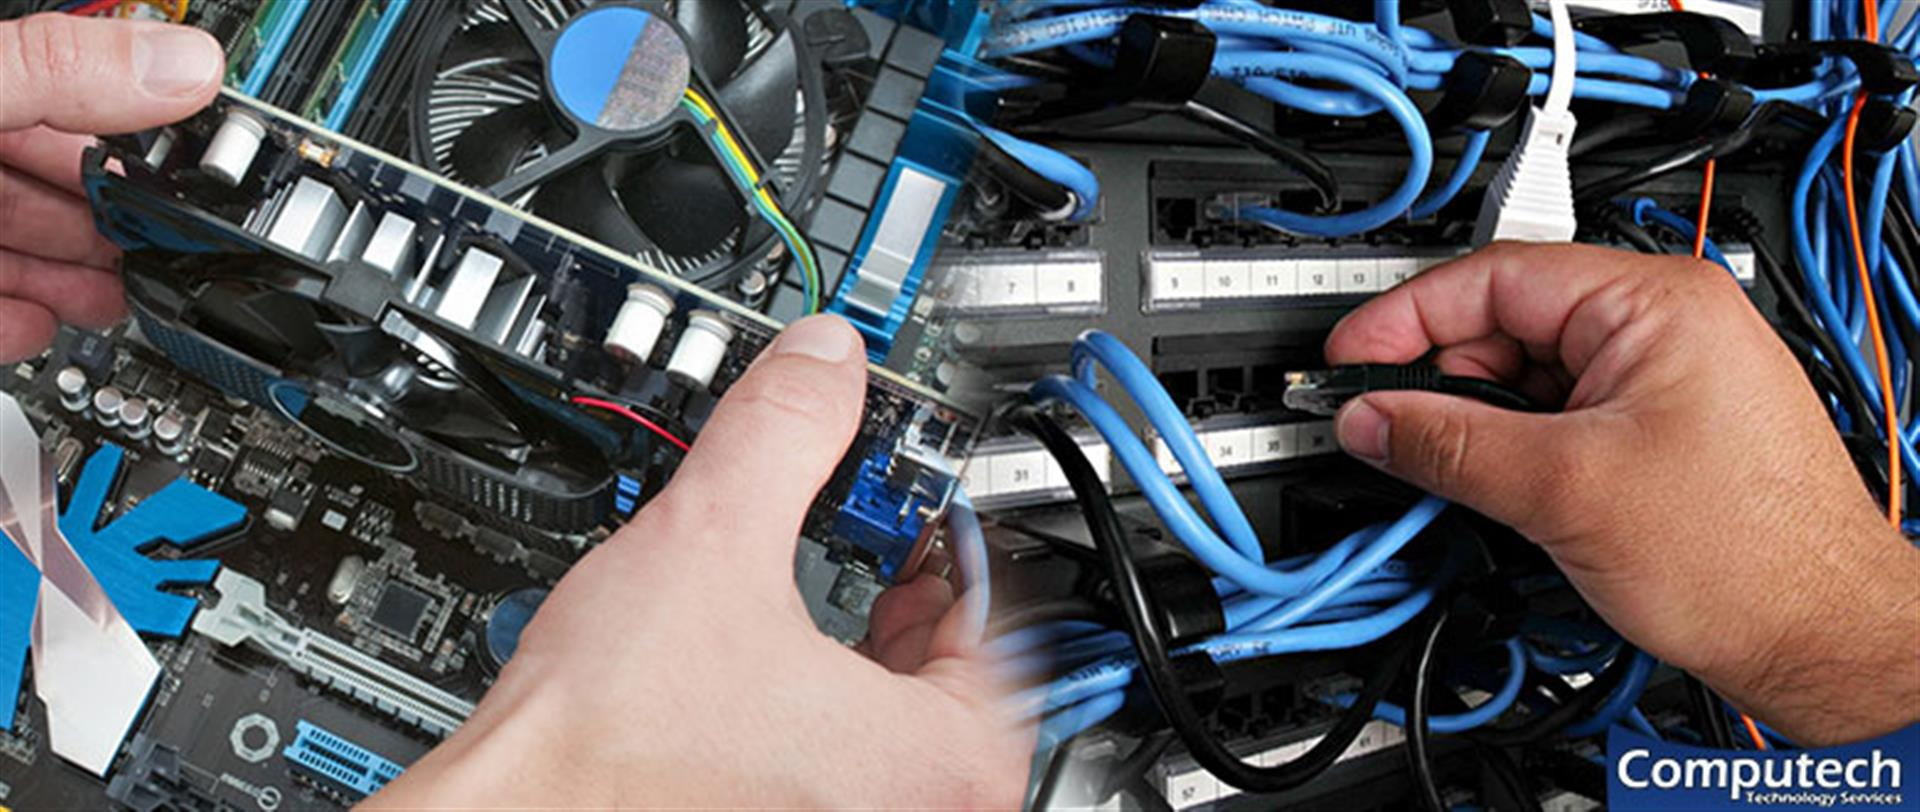 Hiram Georgia Onsite Computer & Printer Repair, Network, Voice & Data Cabling Services